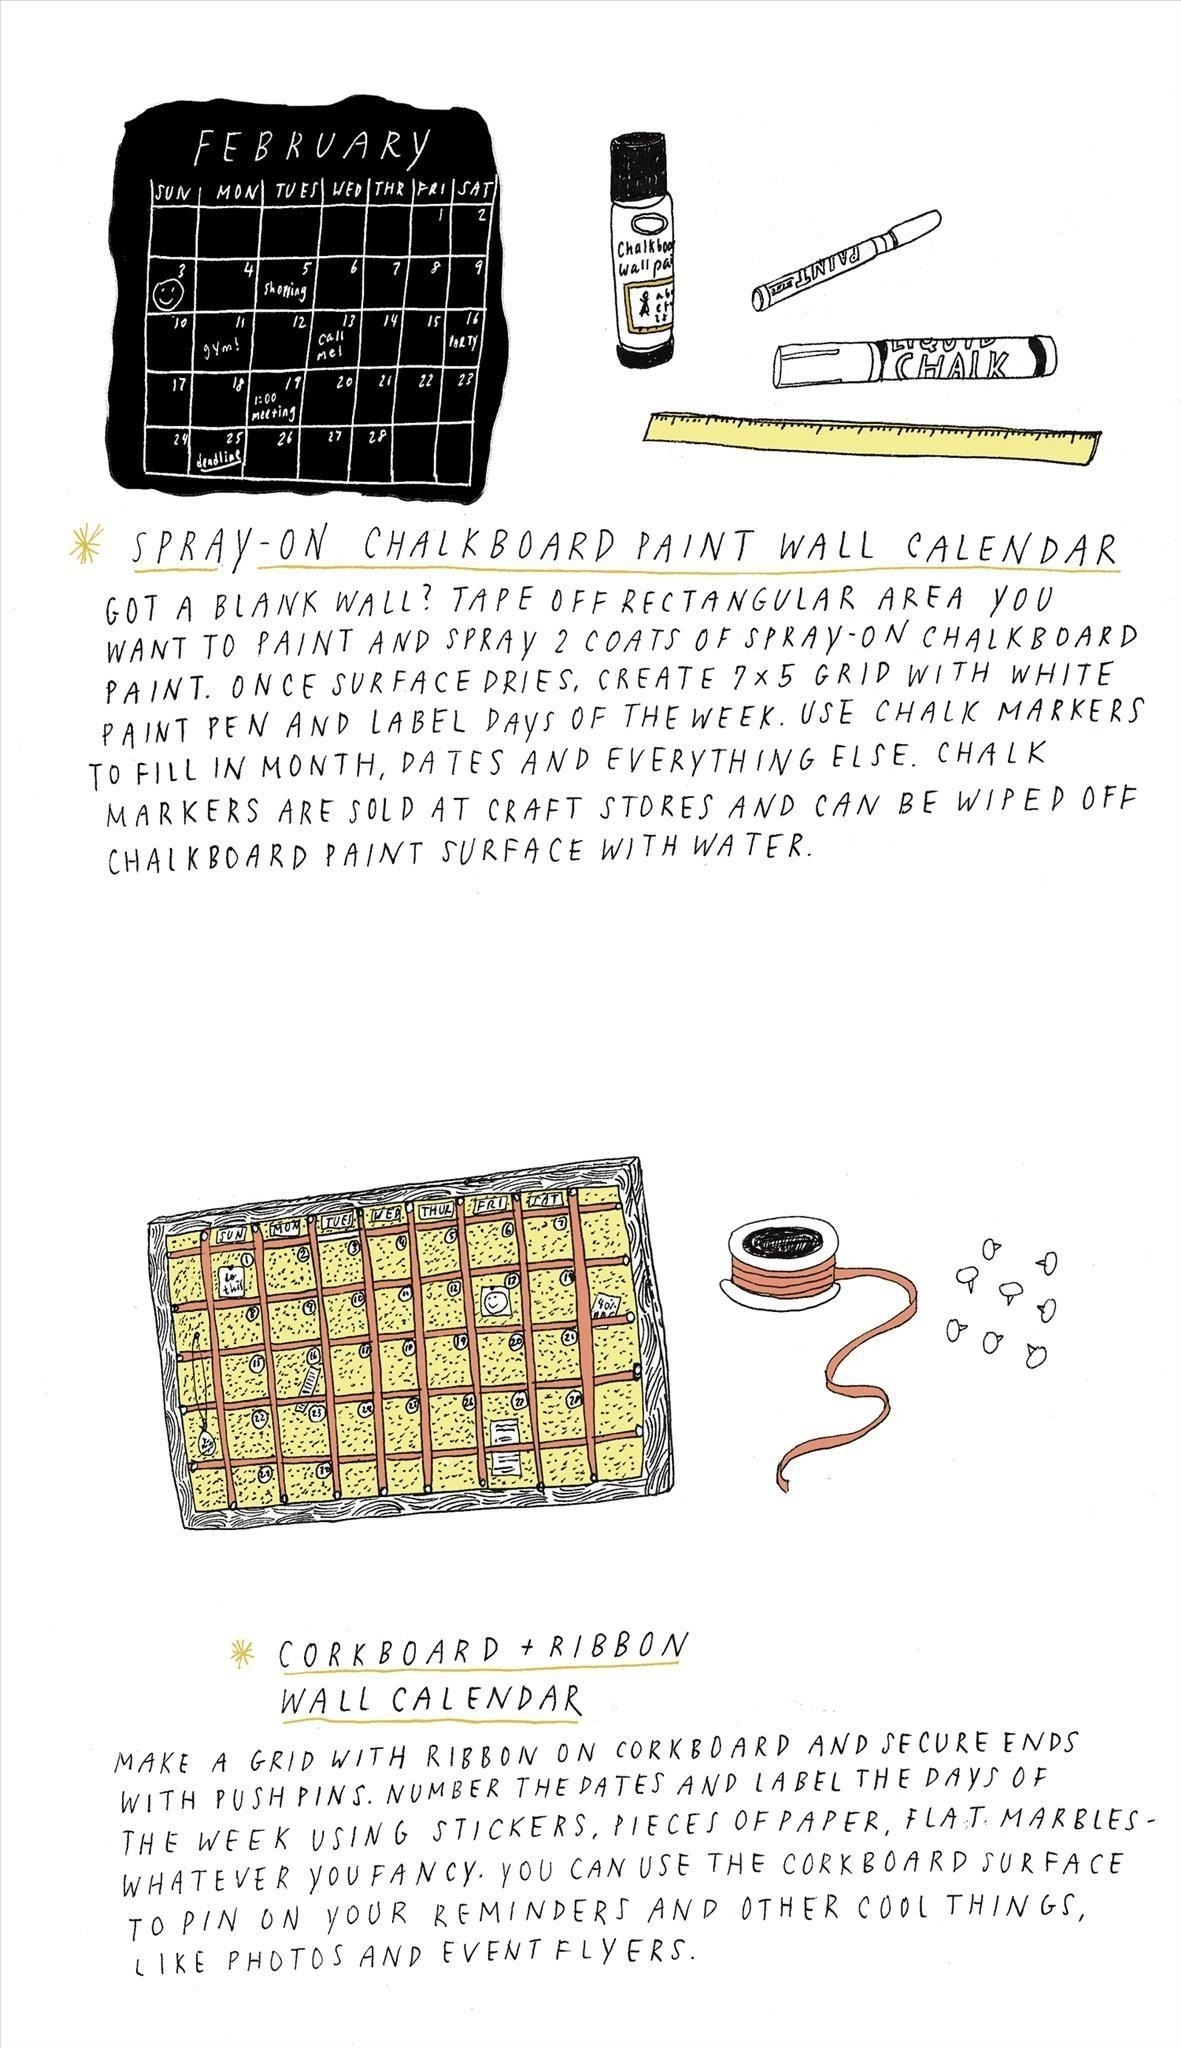 5 Cool Diy Calendar Ideas For 2013 « The Secret Yumiverse